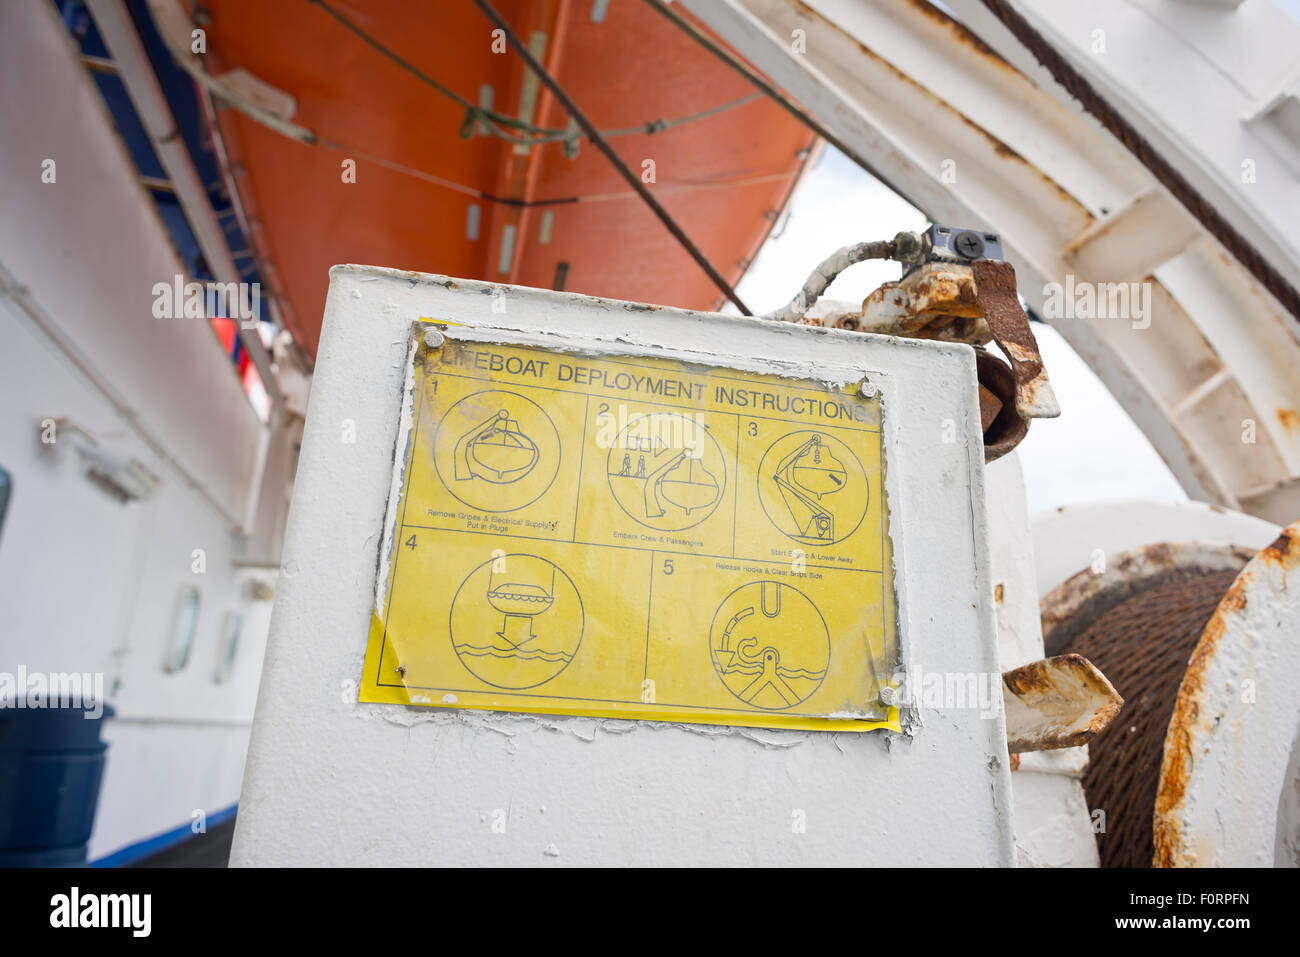 Lifeboat deployment instructions on a ferry - Stock Image